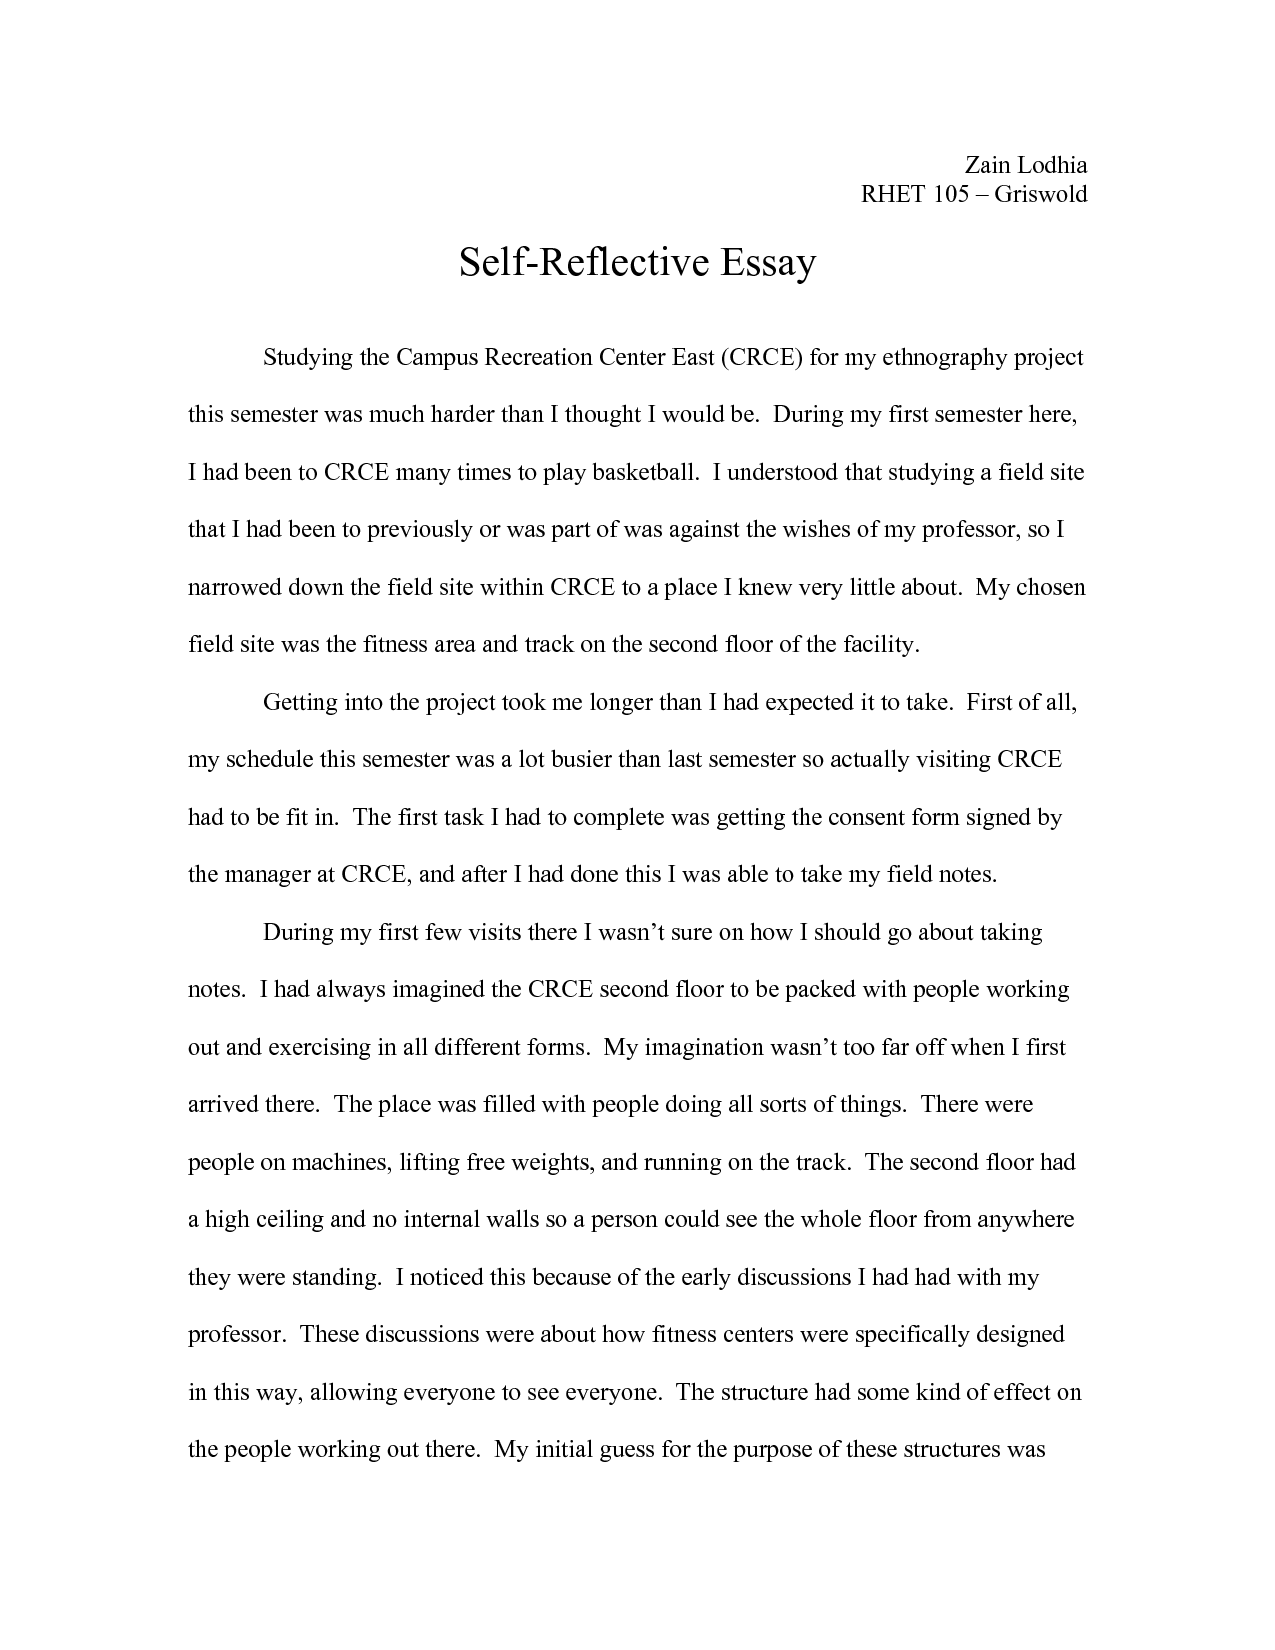 003 Qal0pwnf46 Reflective Essays Beautiful Essay Examples Writing Pdf College Sample Full